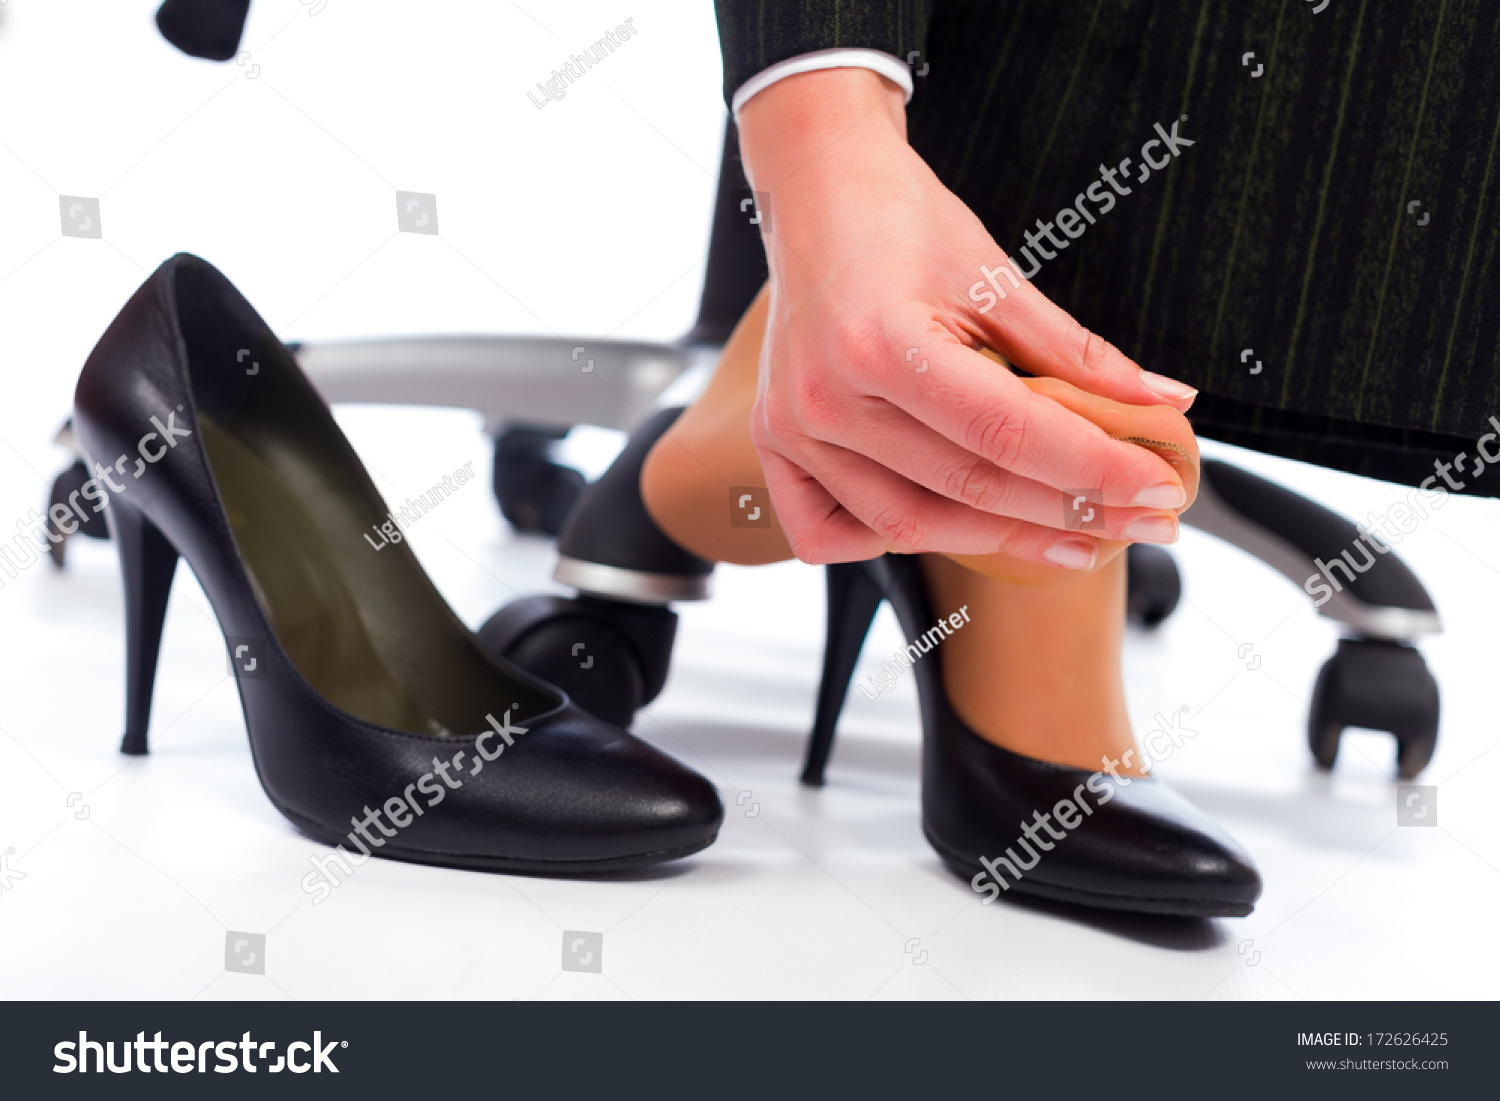 Wearing High Heel Shoes Has Its Painful Disadvantages ...